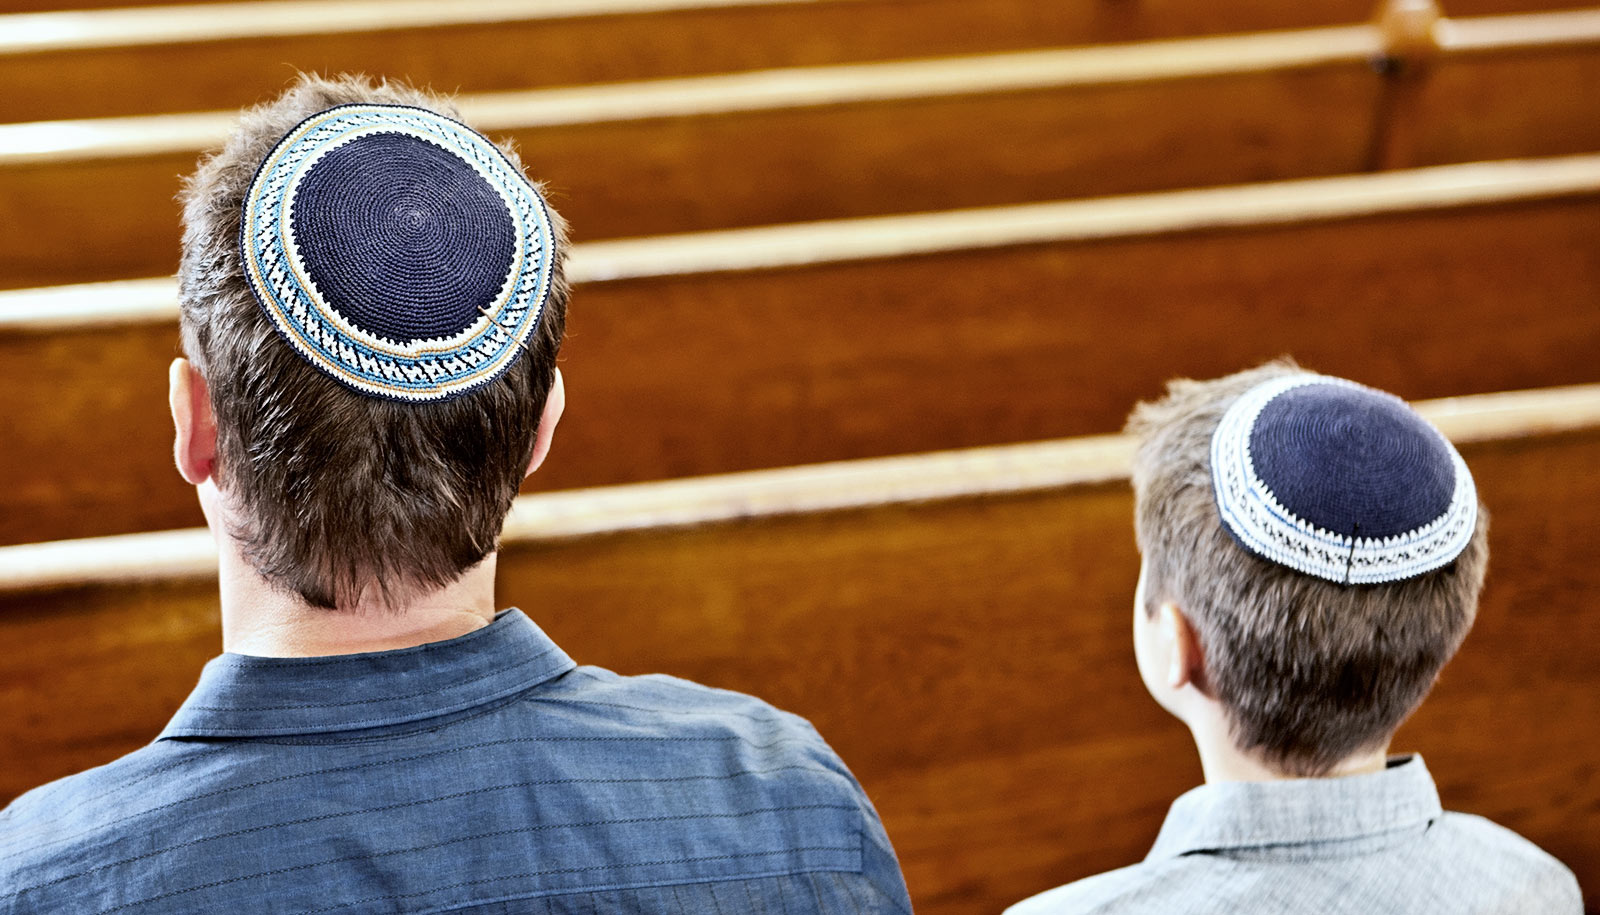 What should Jewish kids learn about Israel?